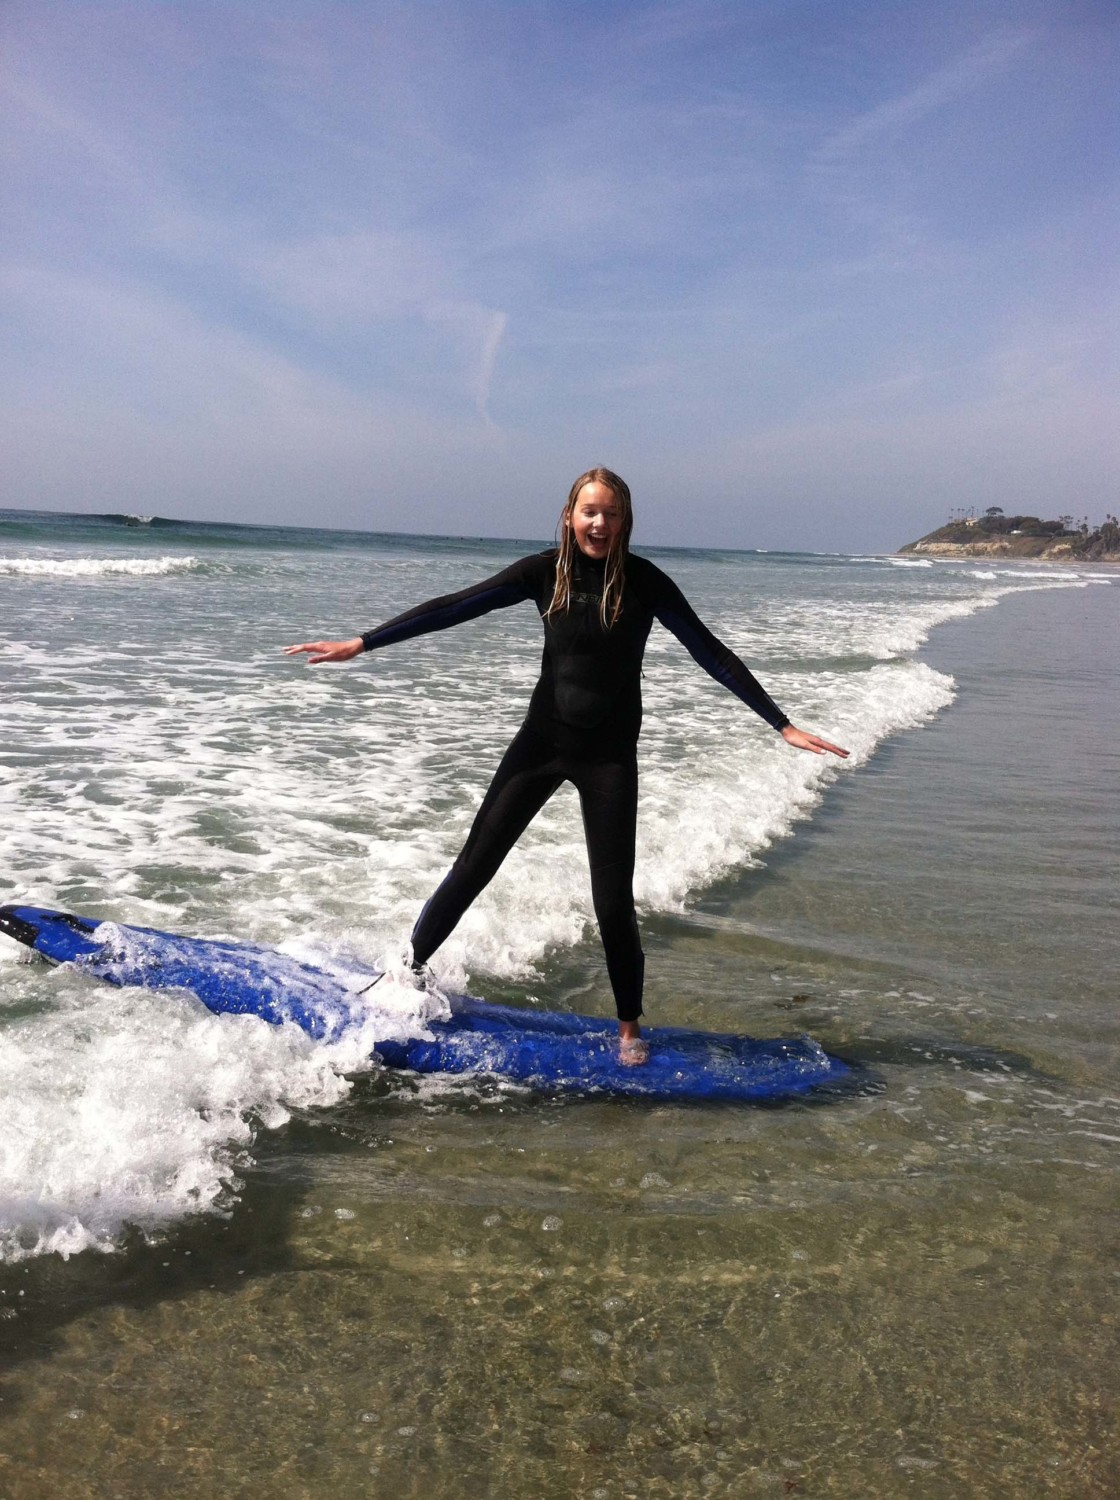 Waterspot: Who the heck discovered surfing?